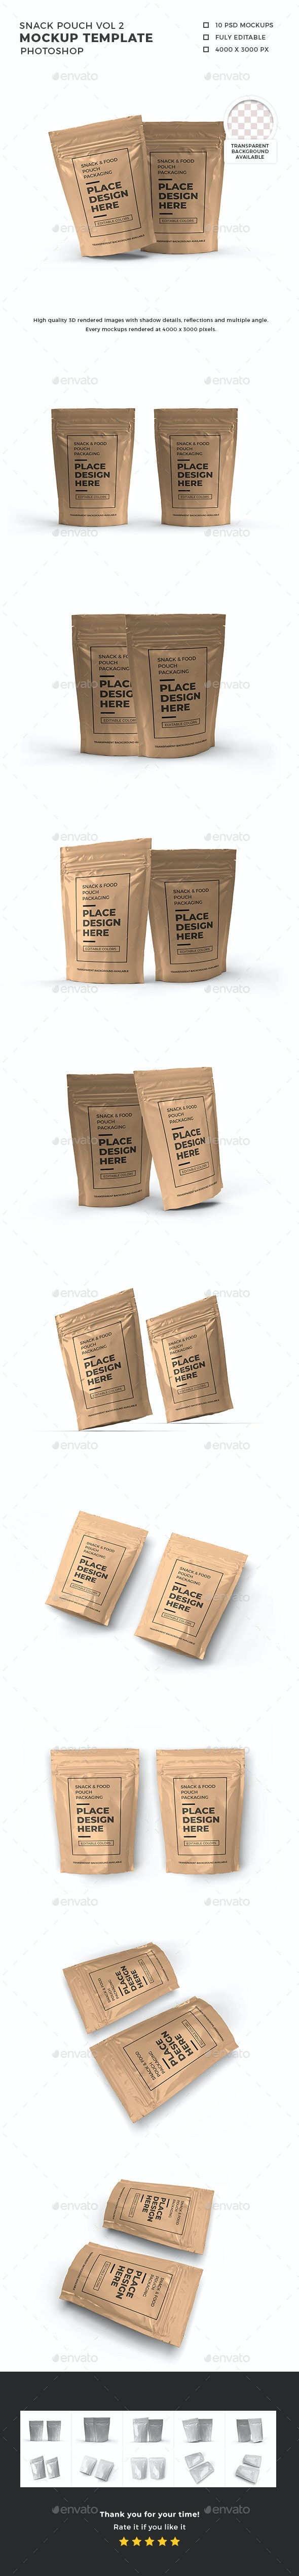 Snack Pouch Packaging Mockup Template Vol 2 - Food and Drink Packaging